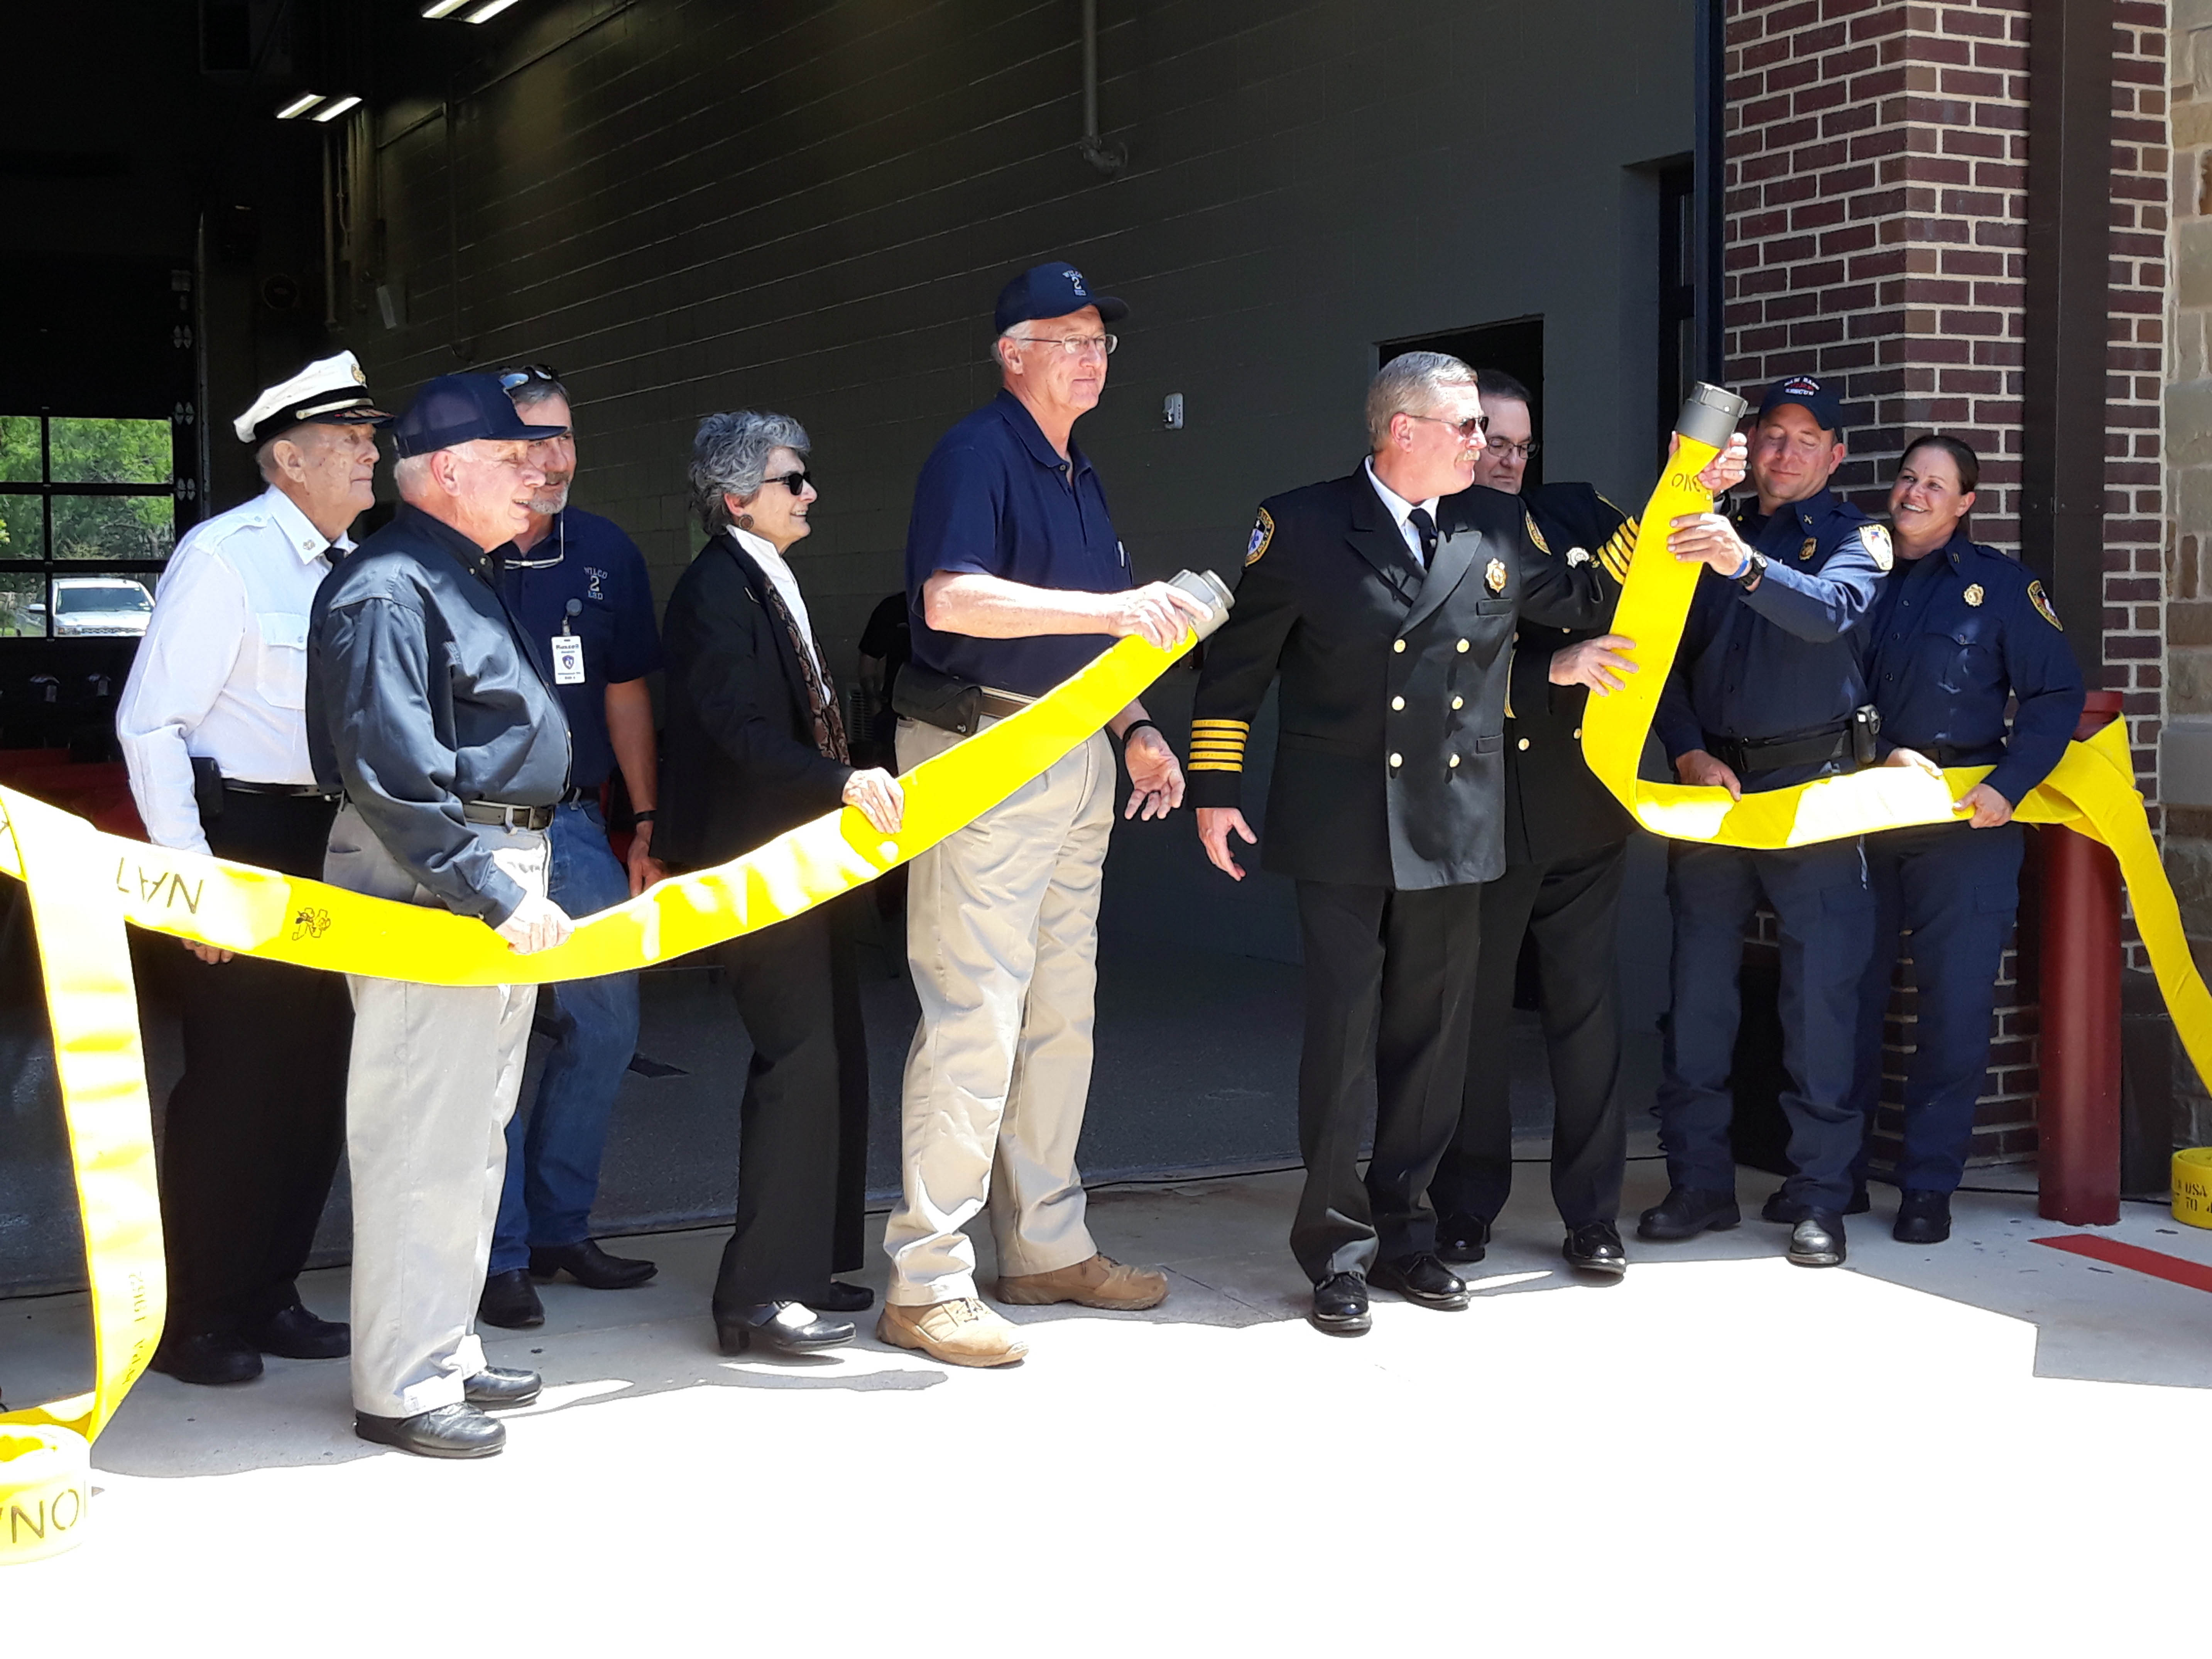 Participating in the traditional fire hose uncoupling during the ESD 2 grand opening were left to right Bob Steinmann, Former Chief, Sam Bass Fire Department; Darryl Pool, ESD2 Secretary; Russel Strahan, ESD2, Vice President; Commissioner Cook; Thomas Nanninga, ESD2 President; and Sam Bass Fire Department Chief David Kieschnick, Assistant Chief Keith Farris, Captain James Shofner and Captain Amber Jordan.